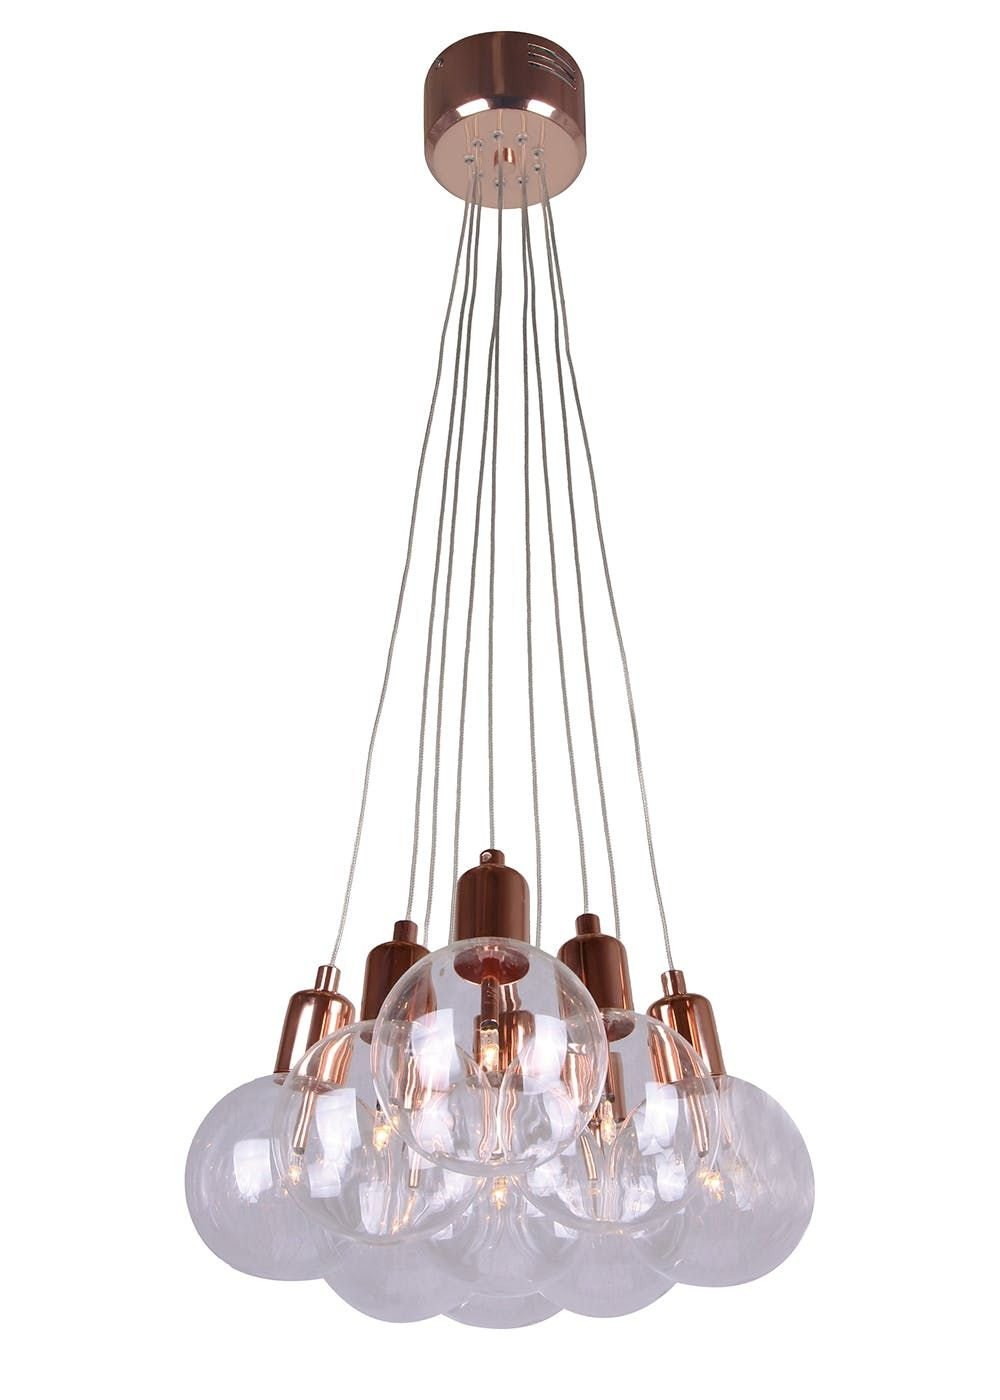 c2a733bb9584 Tapping into industrial influences, this stripped-back design creates  effortless drama. Focusing on the simple beauty of a naked bulb, this  statement.